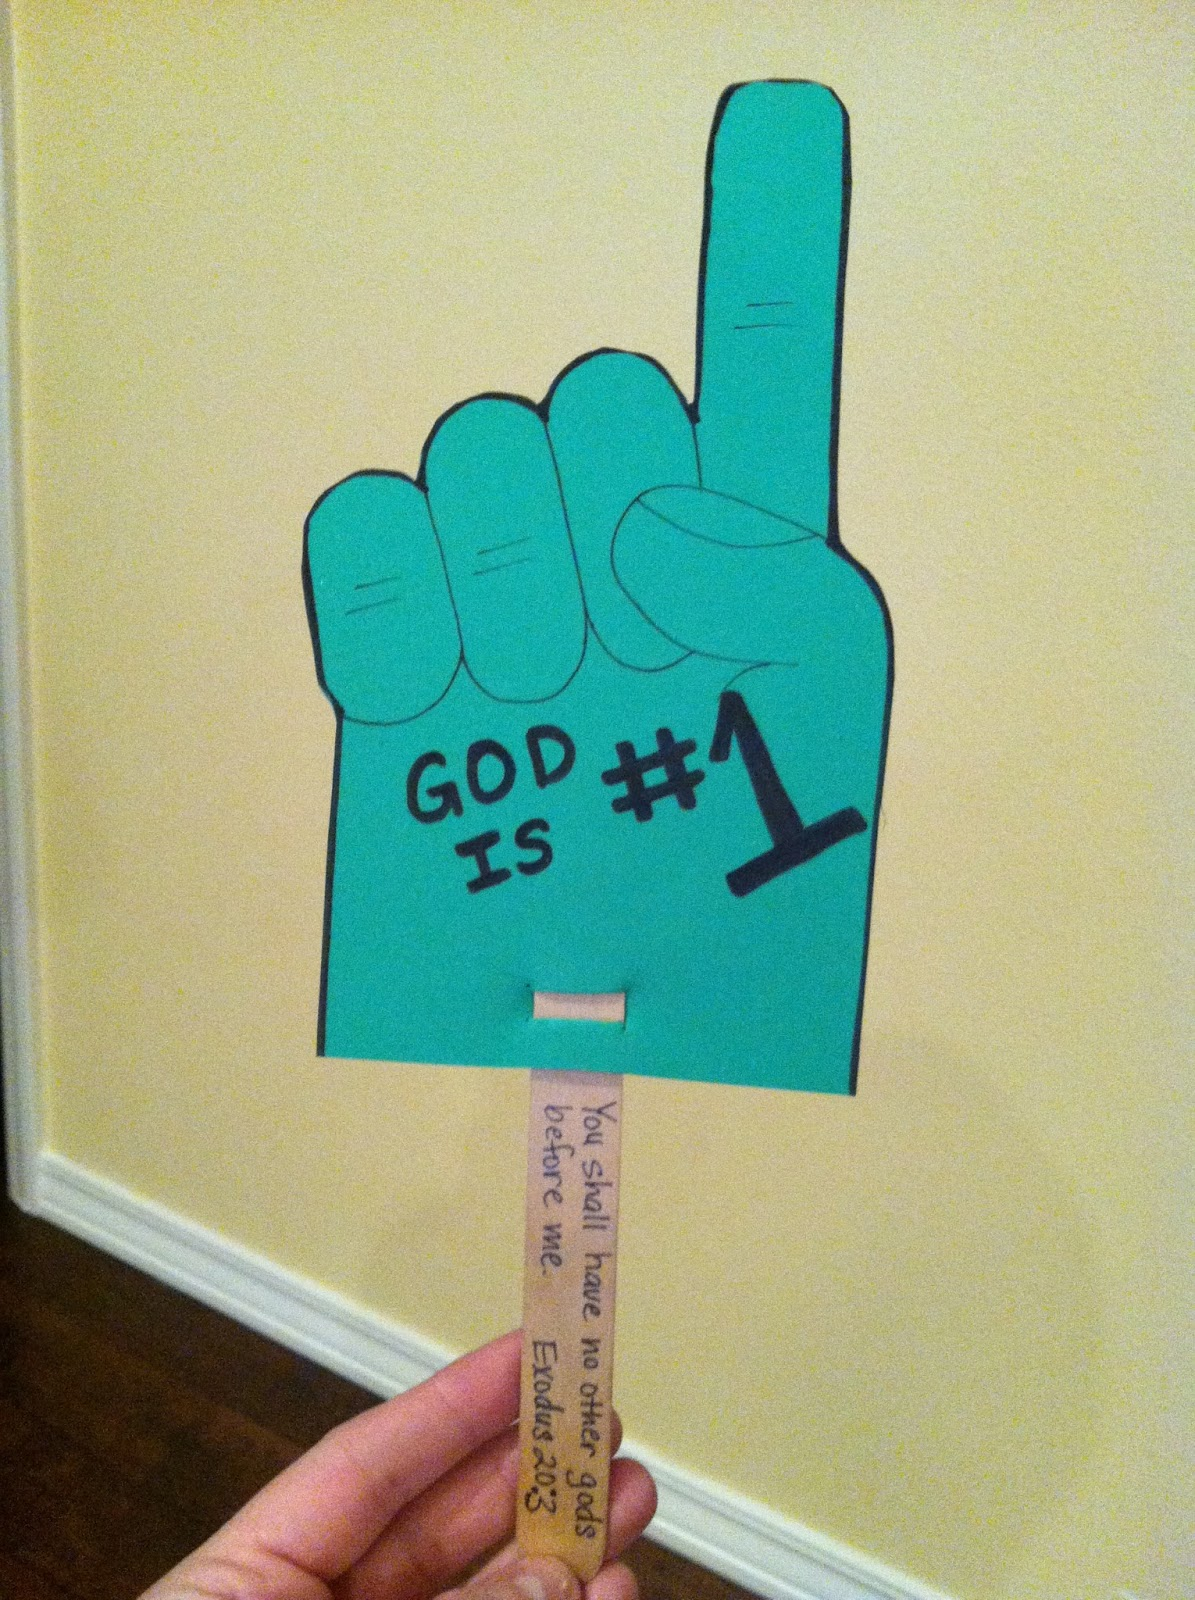 Sunday school crafts for preschool - Sunday School Craft God Is 1 Foam Hand